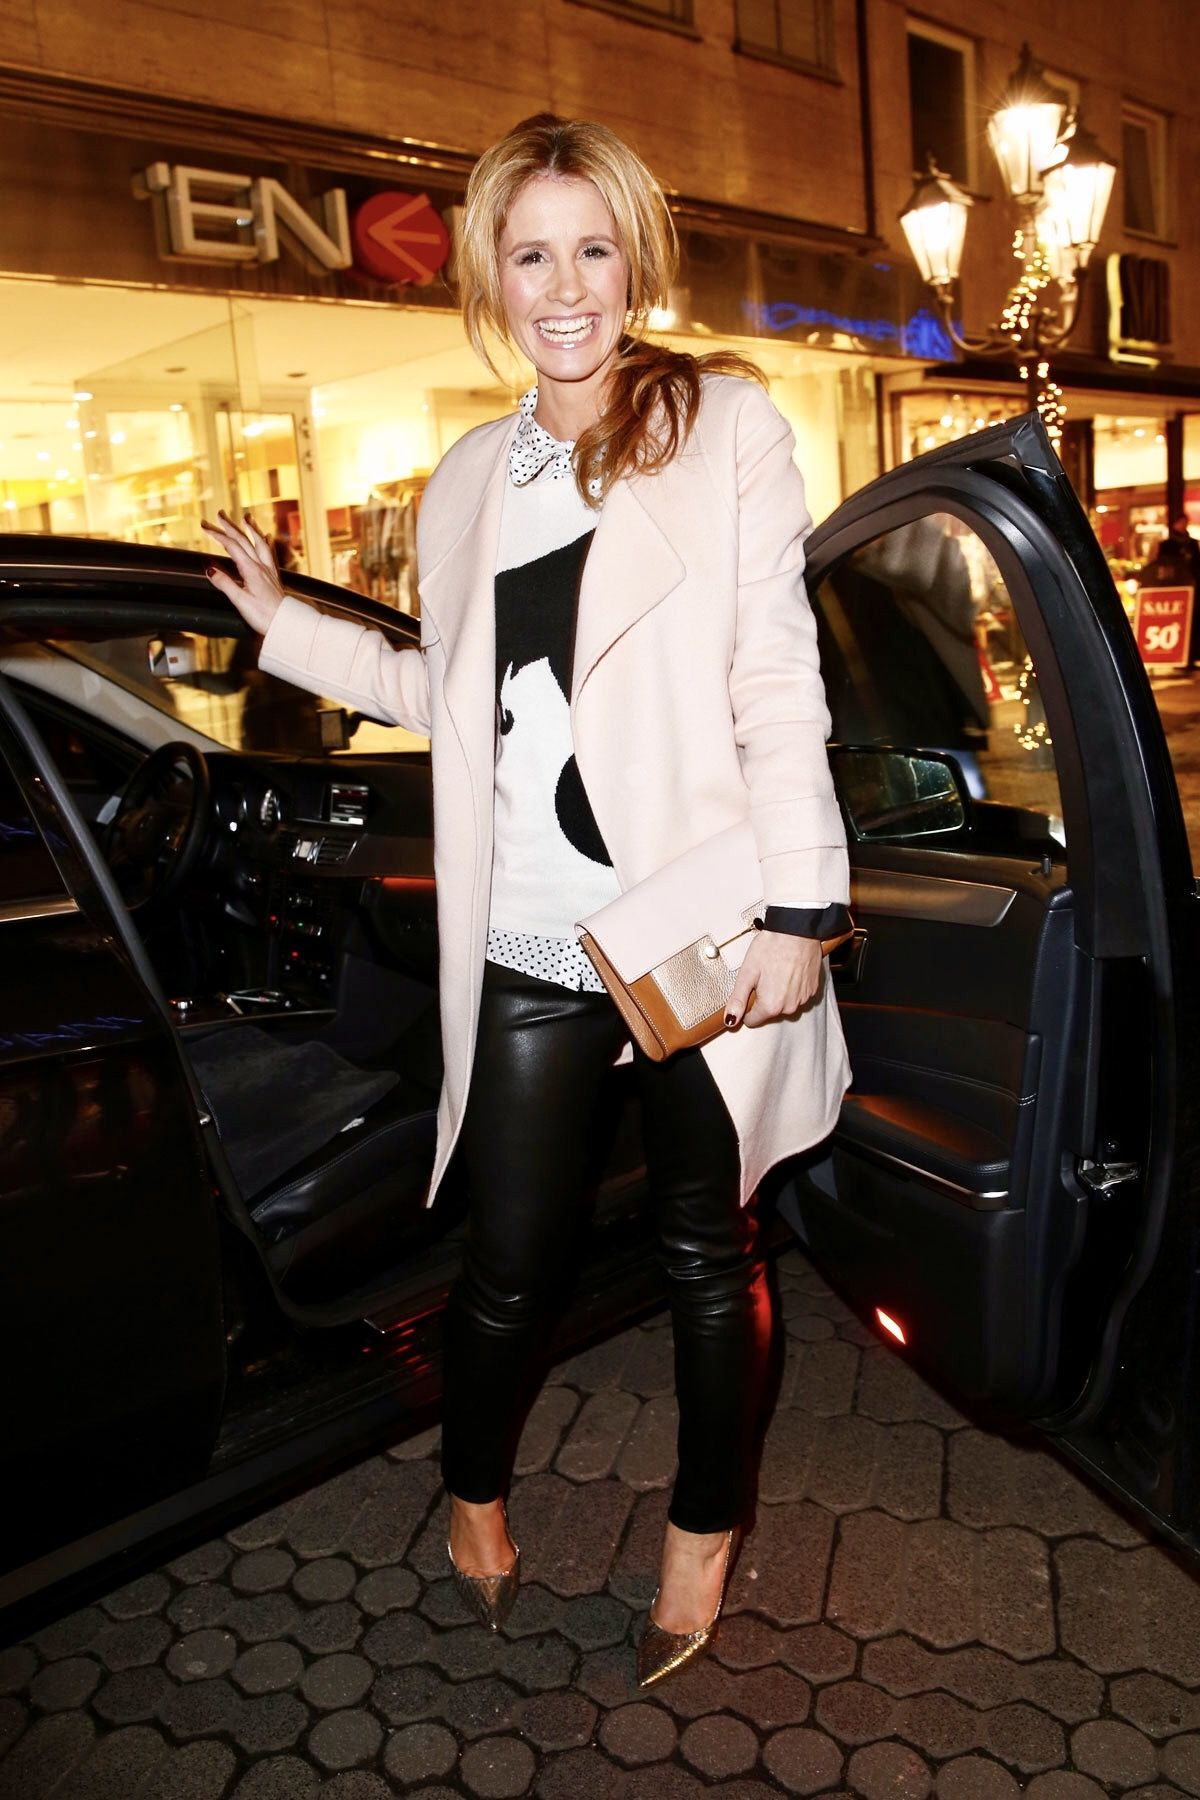 Pin Von Kshitij Auf Classy Leather Pants Outfits Mareile Hoppner